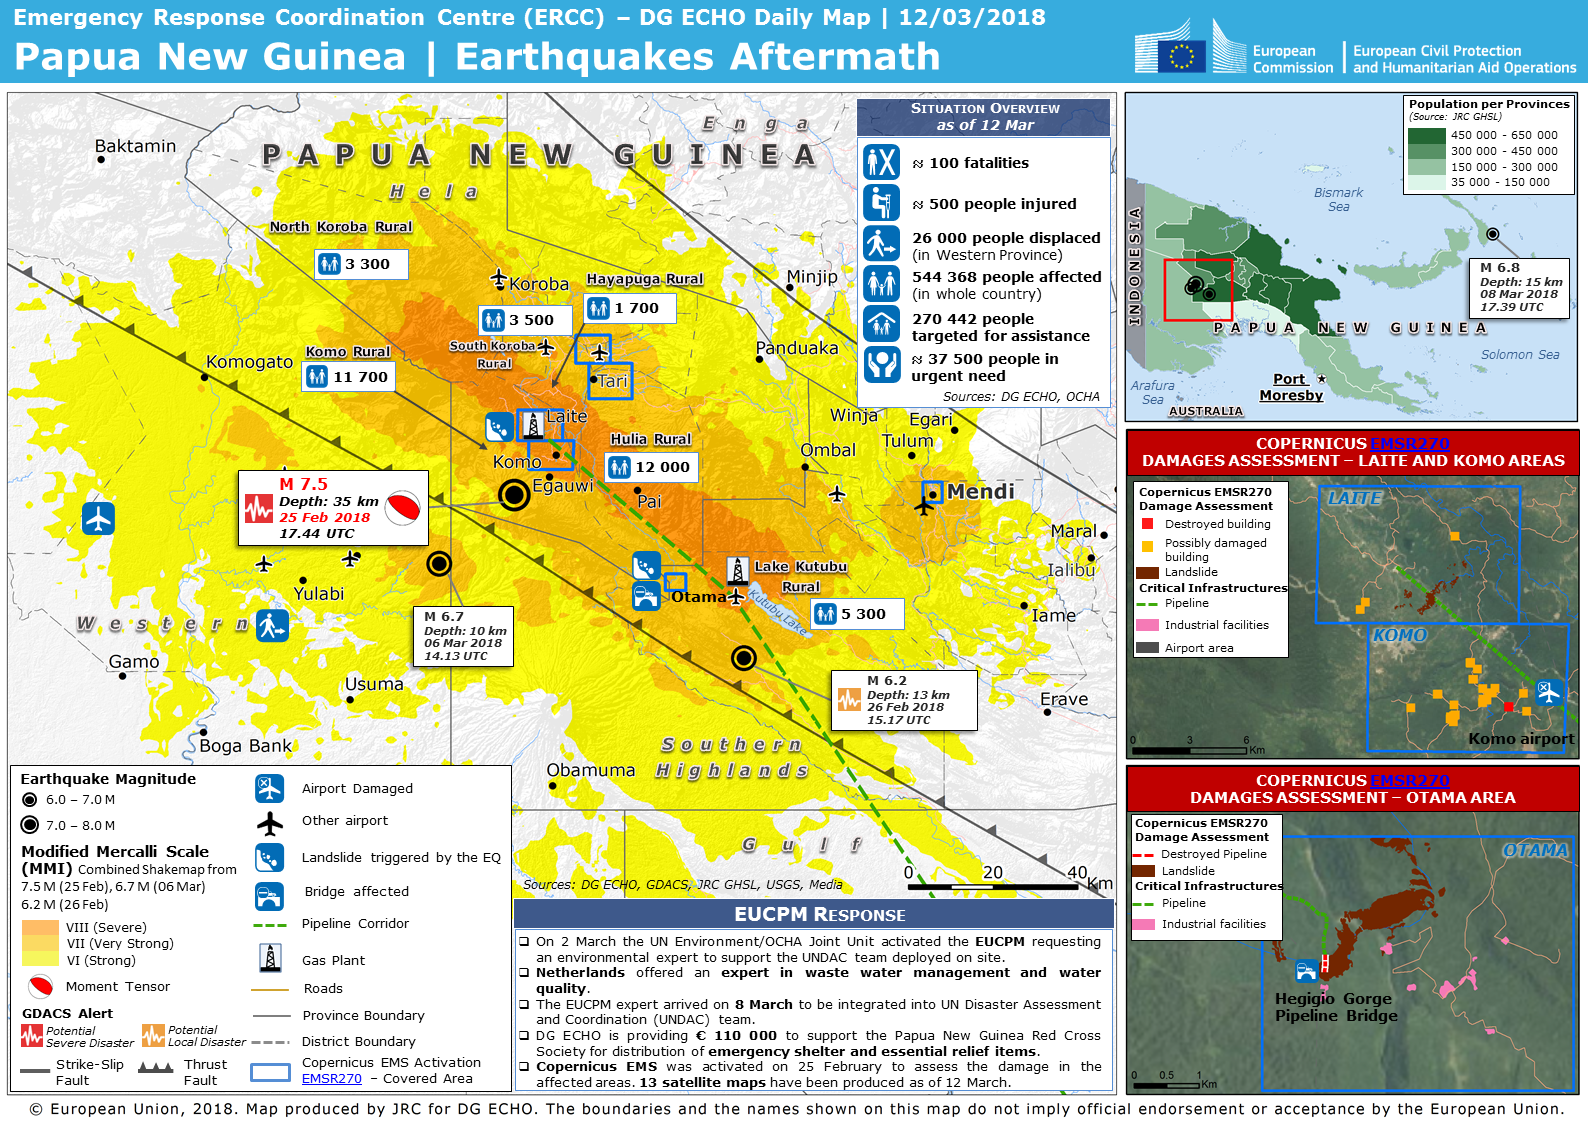 Overall Red Earthquake alert in Papua New Guinea on 25 Feb